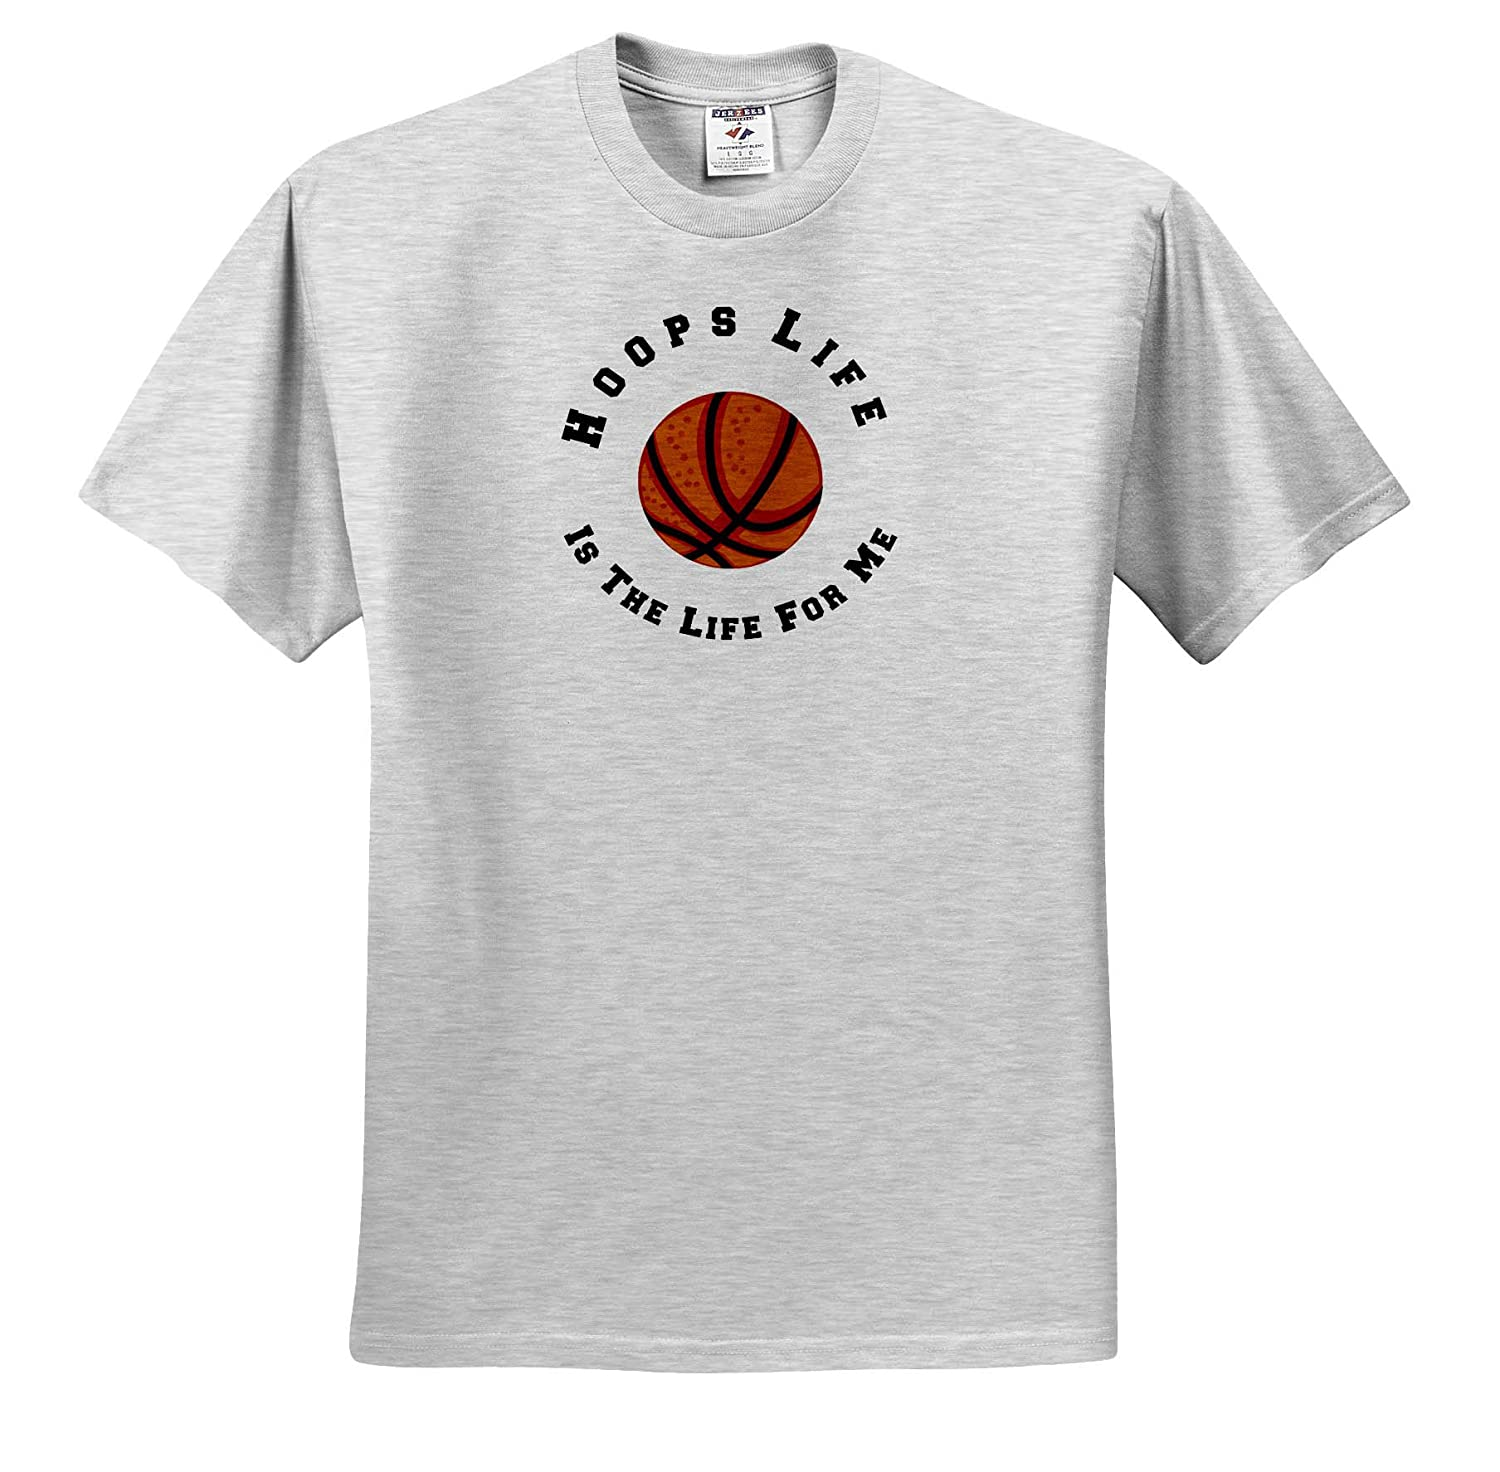 3dRose Carrie Merchant Quote T-Shirts Image of Hoops Life is The Life for Me